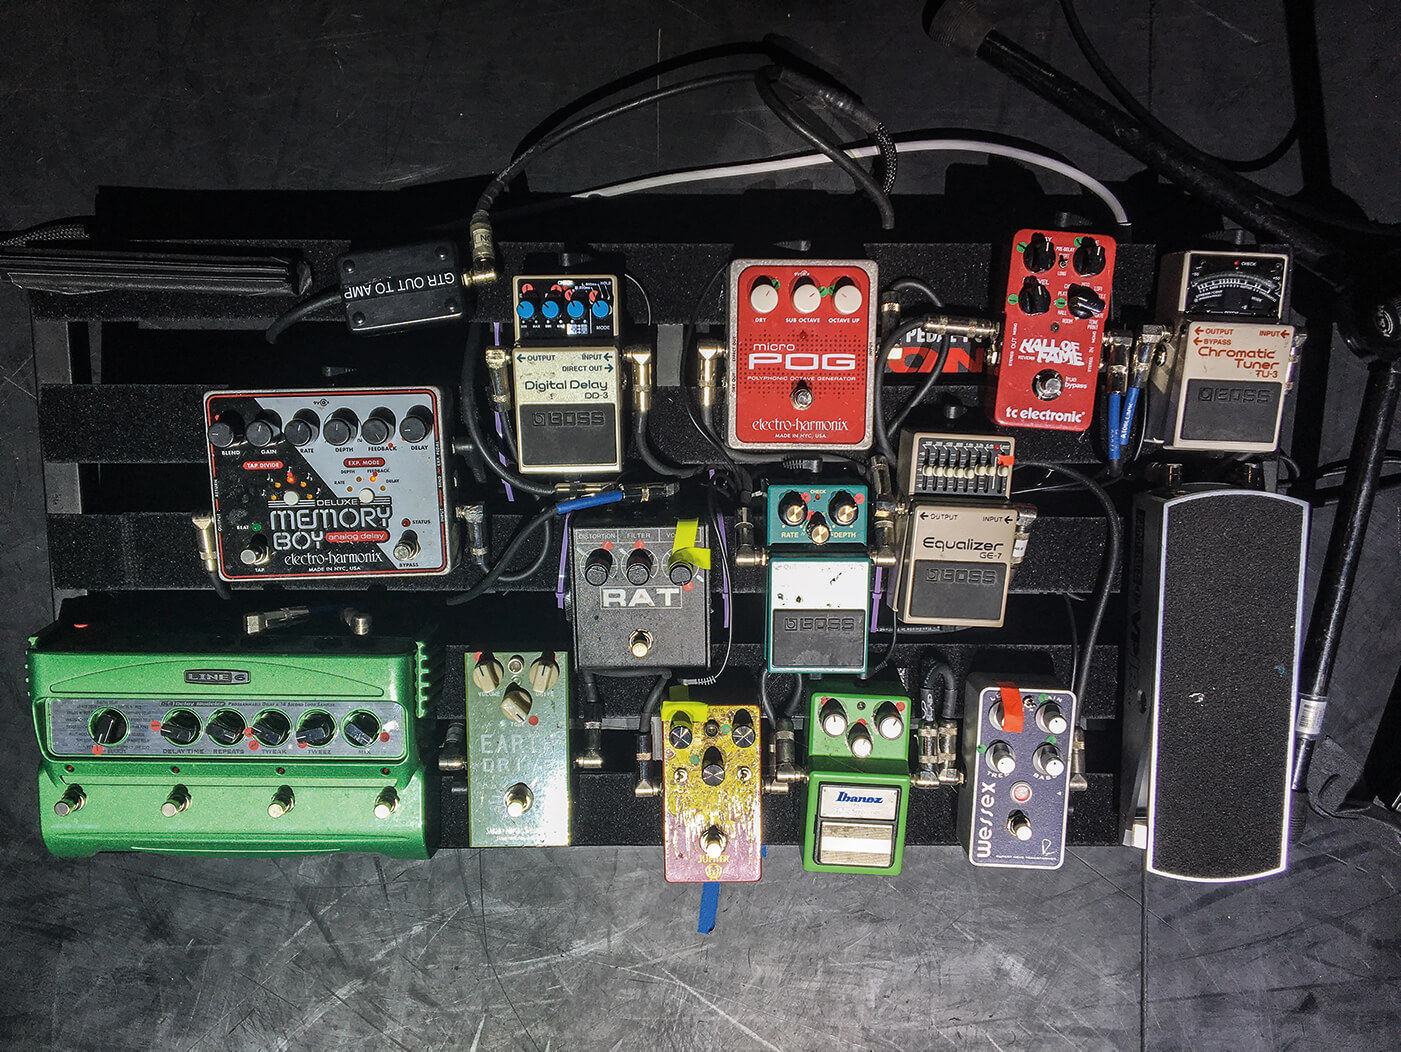 hight resolution of show us your pedalboards guitar com all things guitar pedal board help wiring pic inside4086110200194129150172705564545n